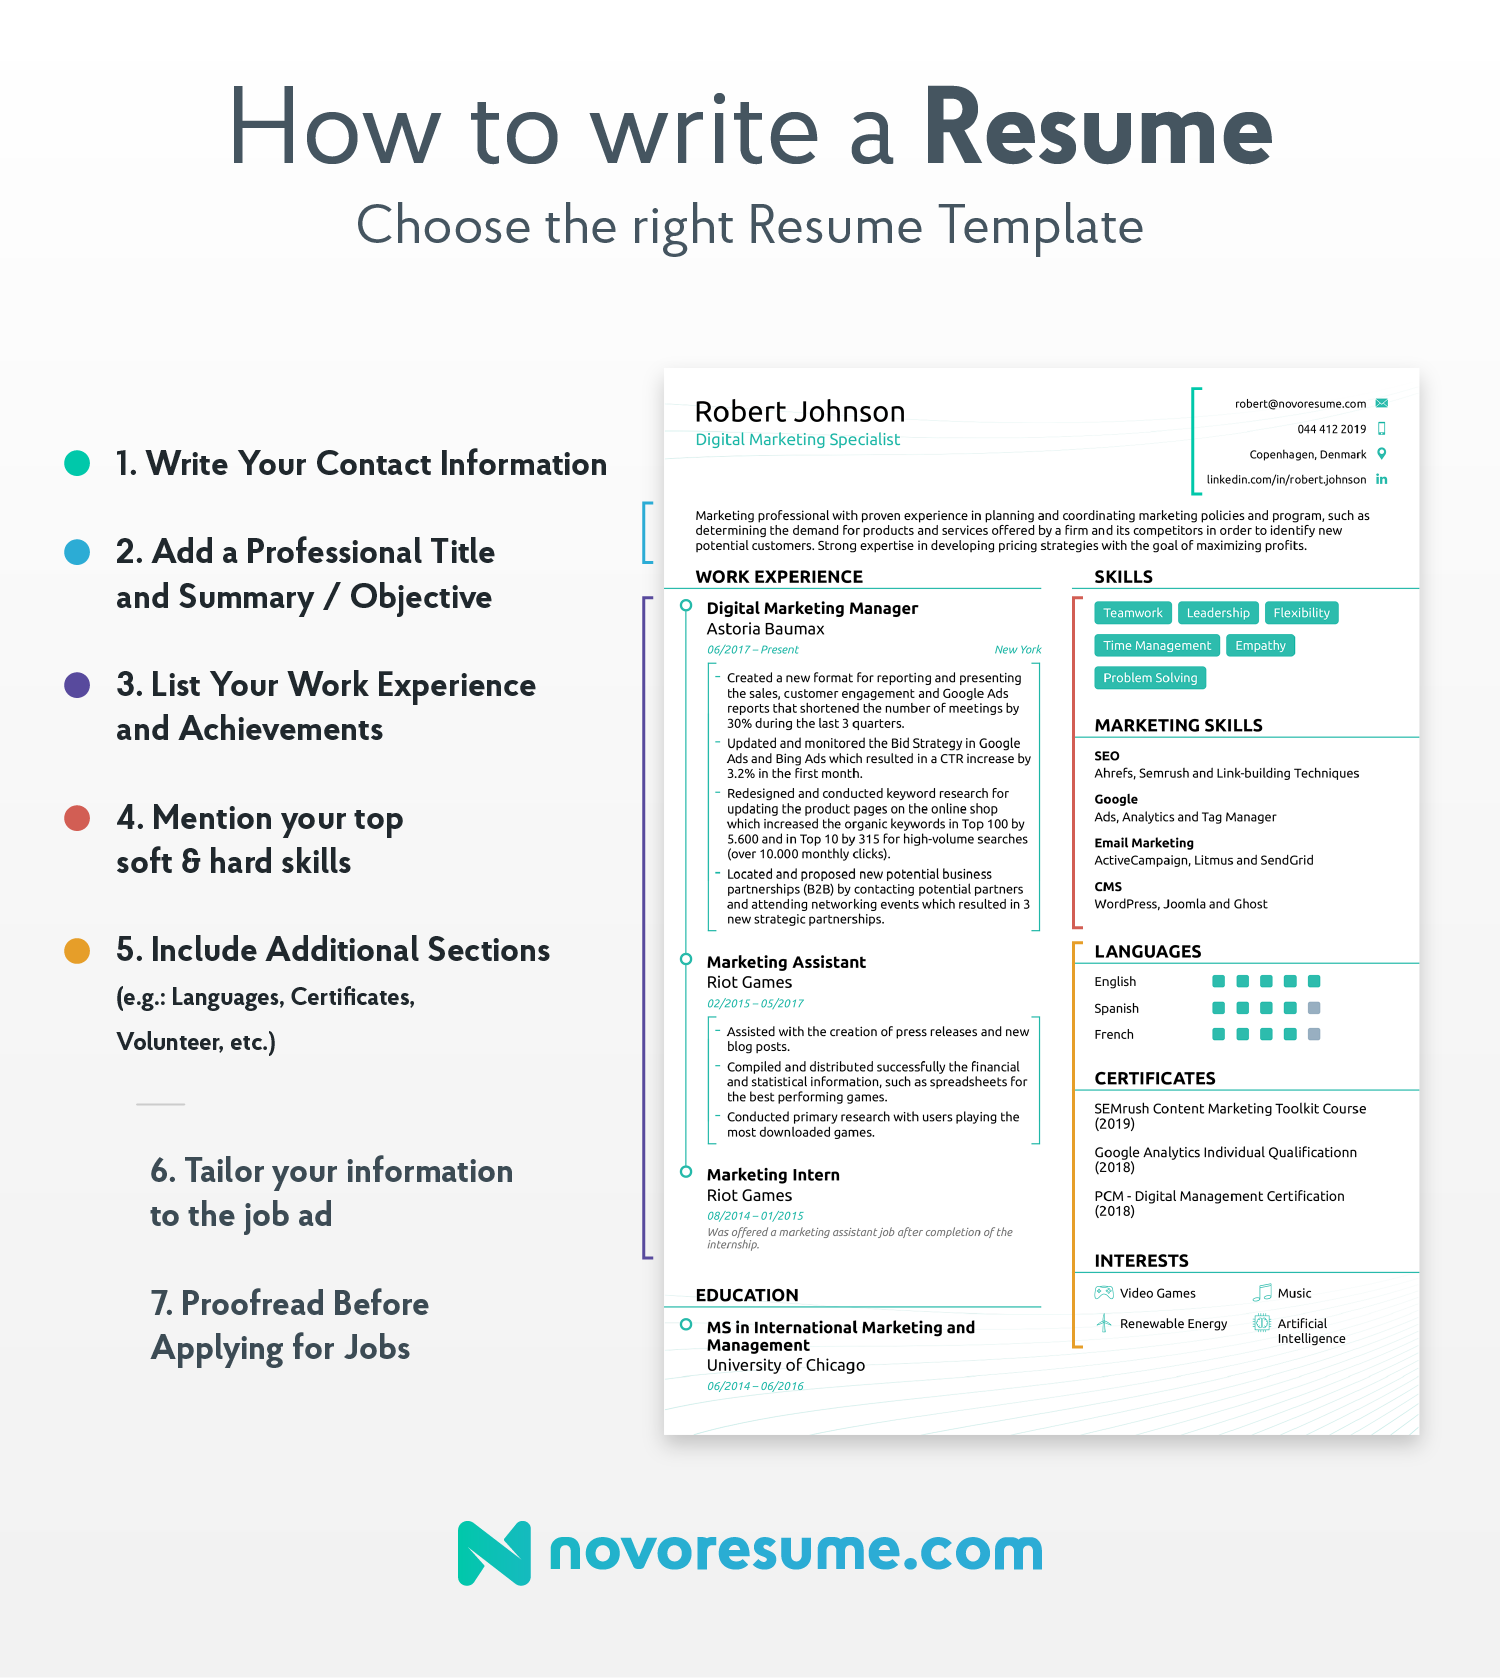 How to Write a Resume & Land That Job [99+ Real-Life Examples]